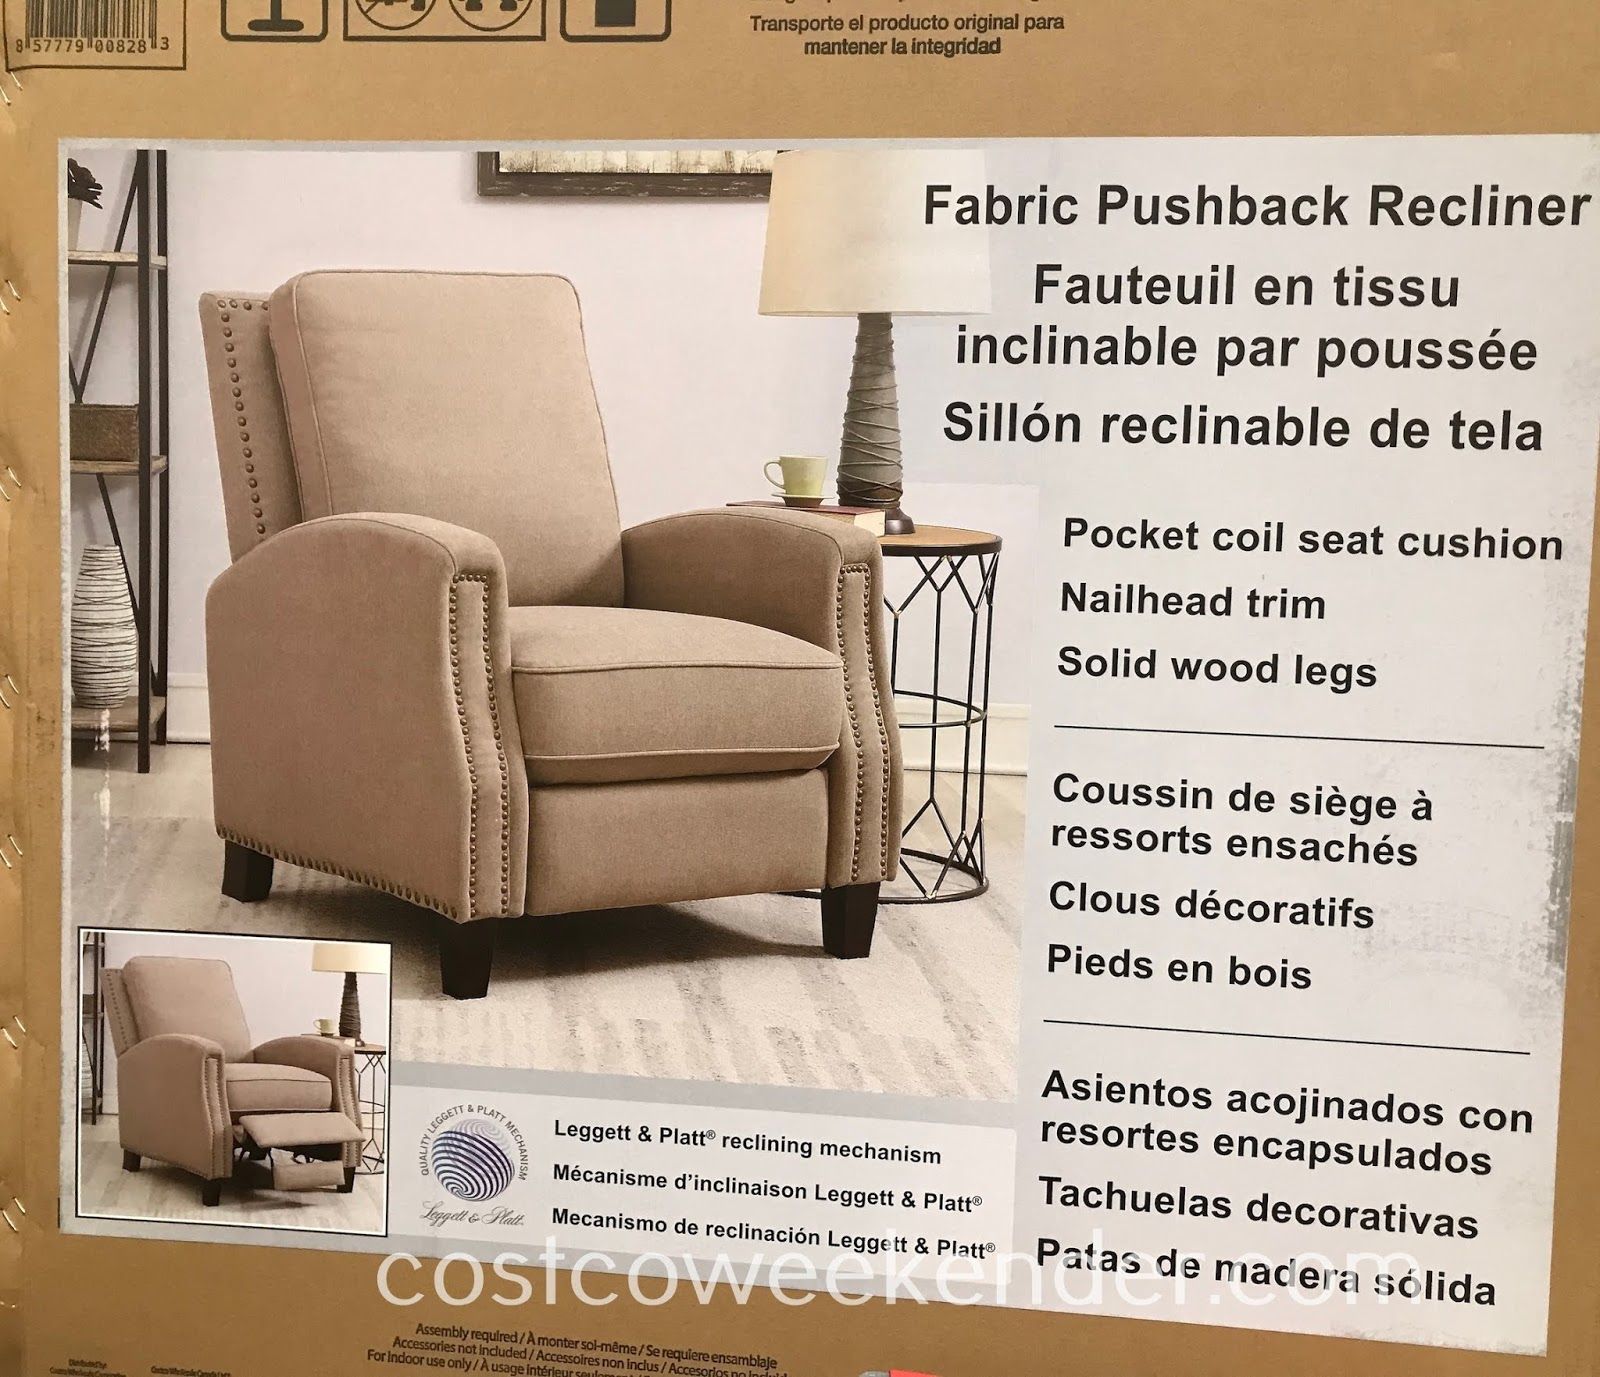 Costco 1335614 - Furnish your home with the comfortable Fabric Pushback Recliner